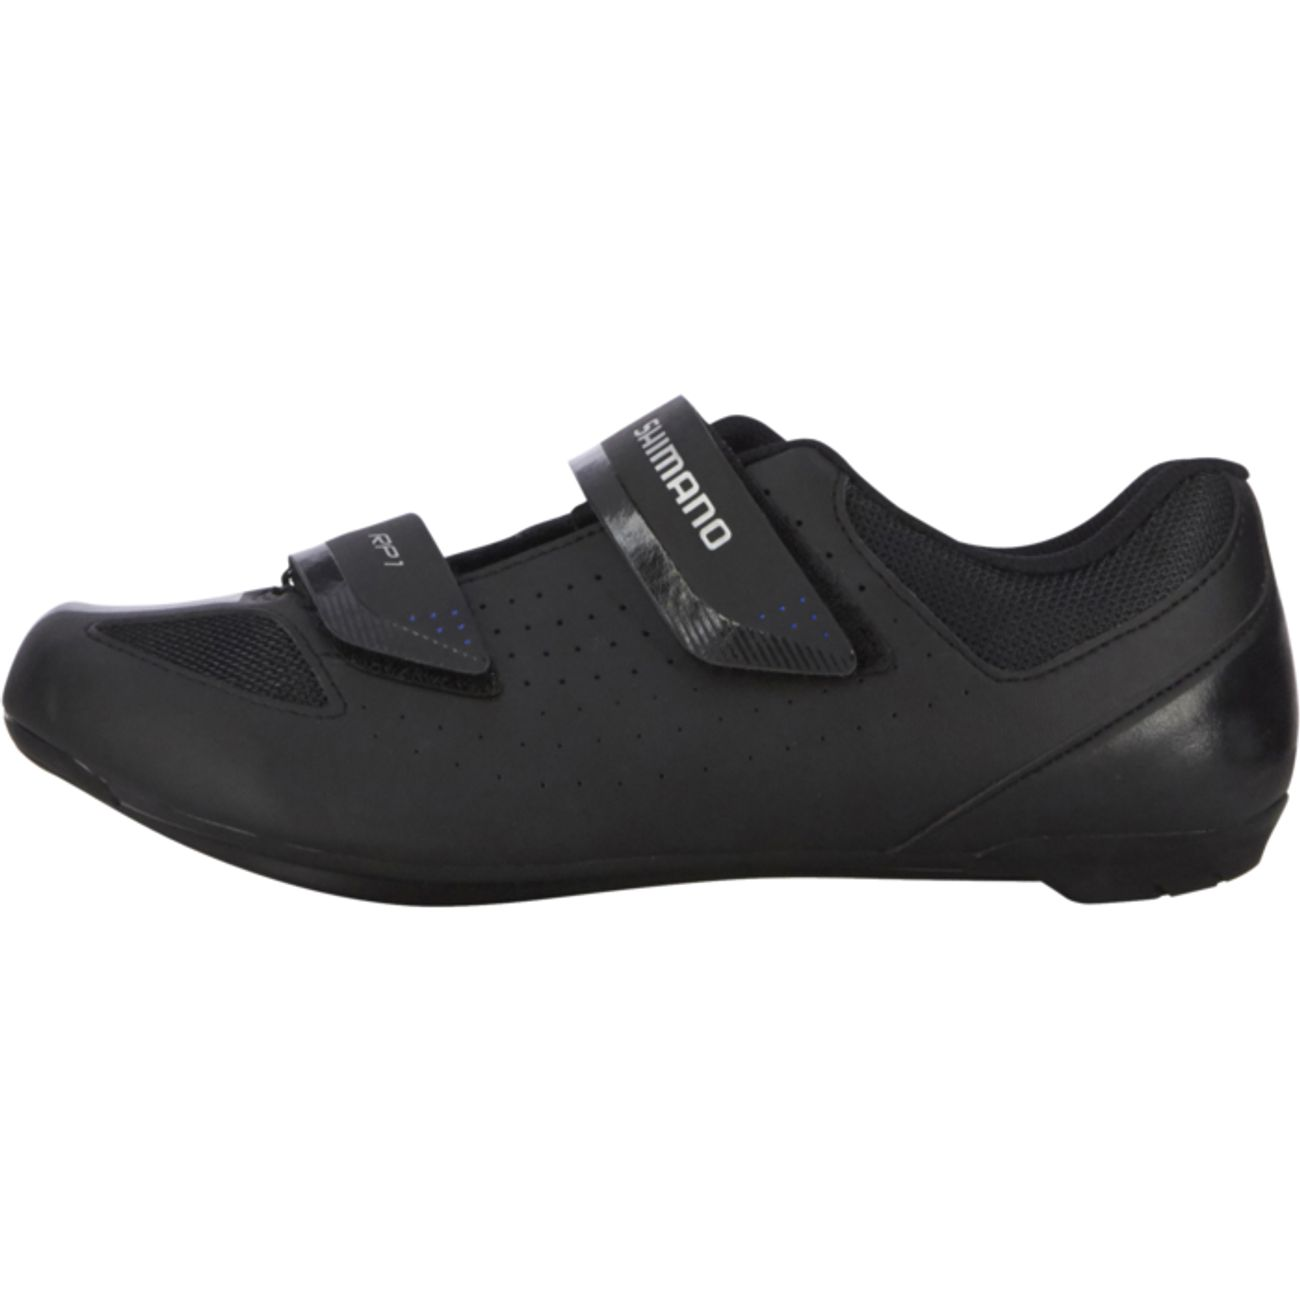 CHAUSSURES BASSES Vélo homme SHIMANO RP1